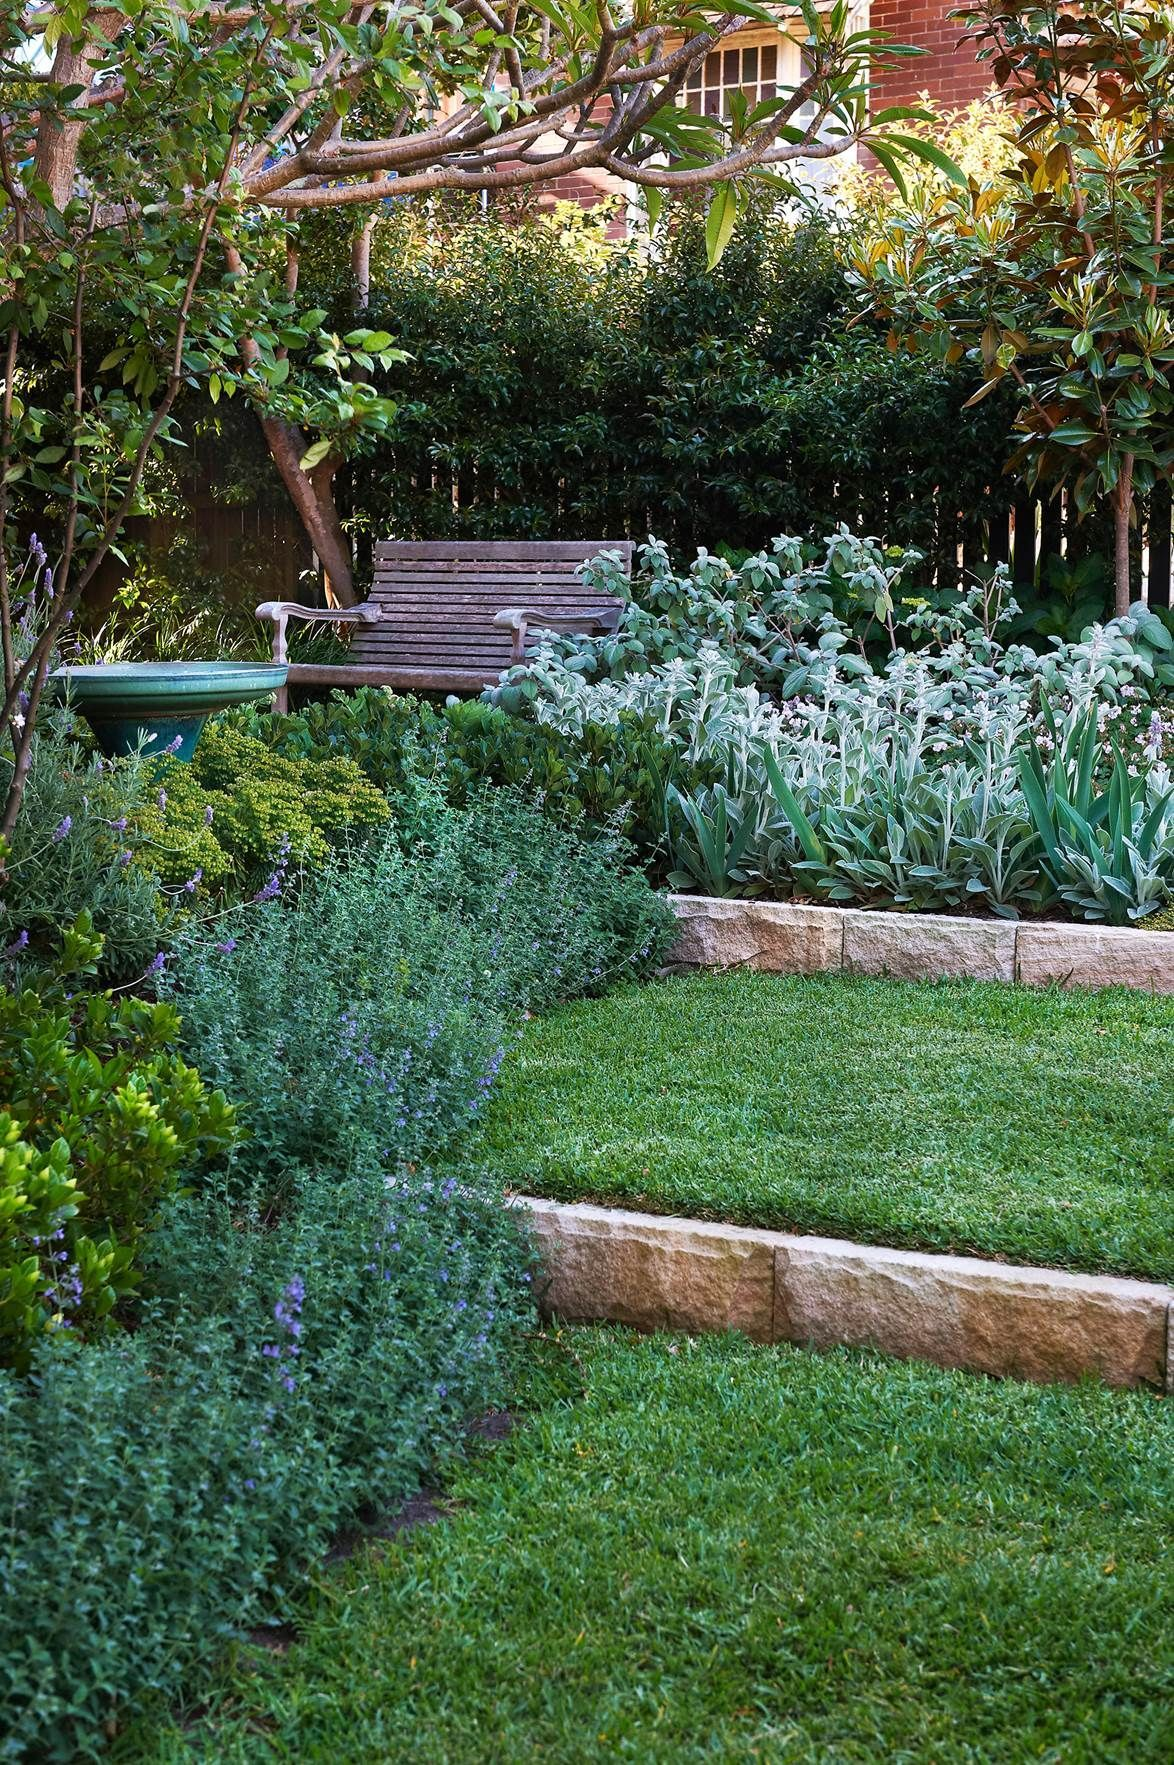 Sydney architect Hugh Burnett shares his top tips for creating a soft, flowing garden with pretty perennials that change with the seasons.